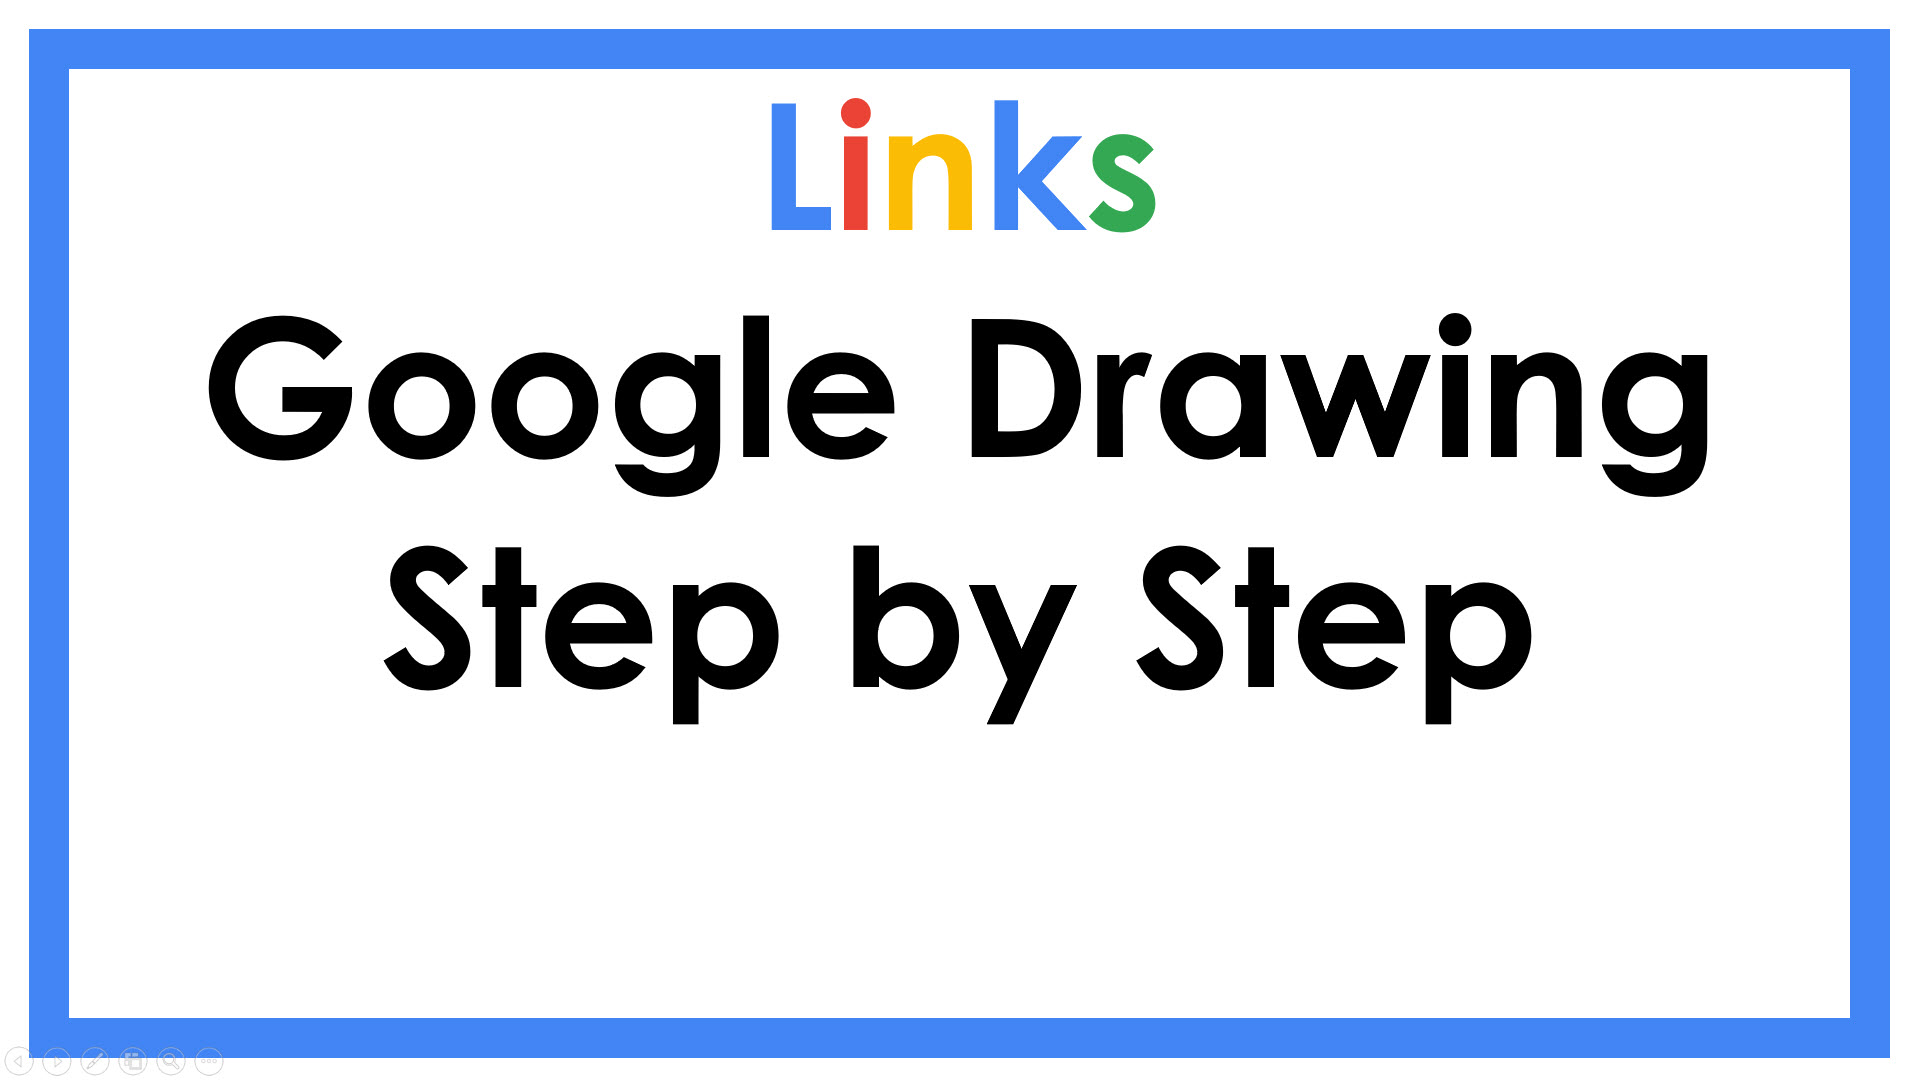 Google Drawing: Step by Step